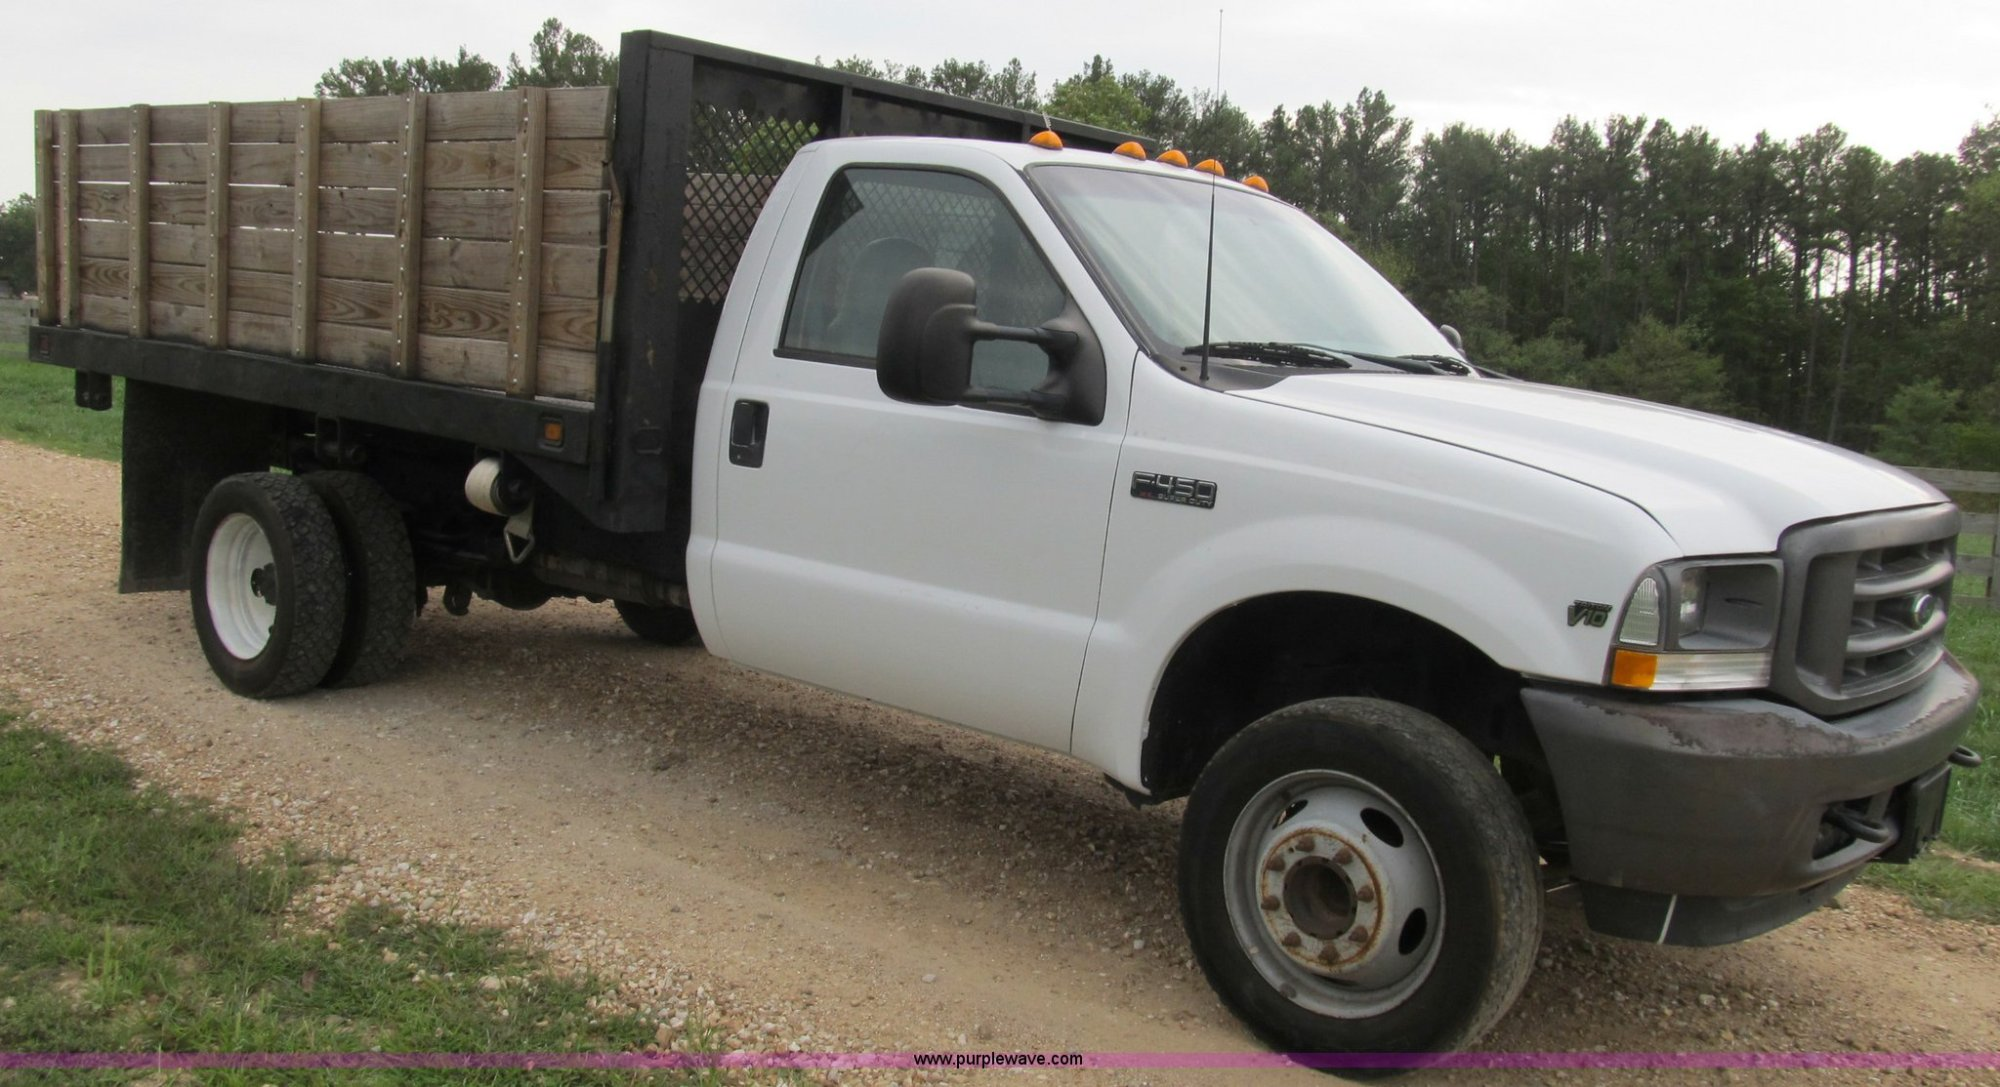 hight resolution of b2878 image for item b2878 2003 ford f450 xl super duty